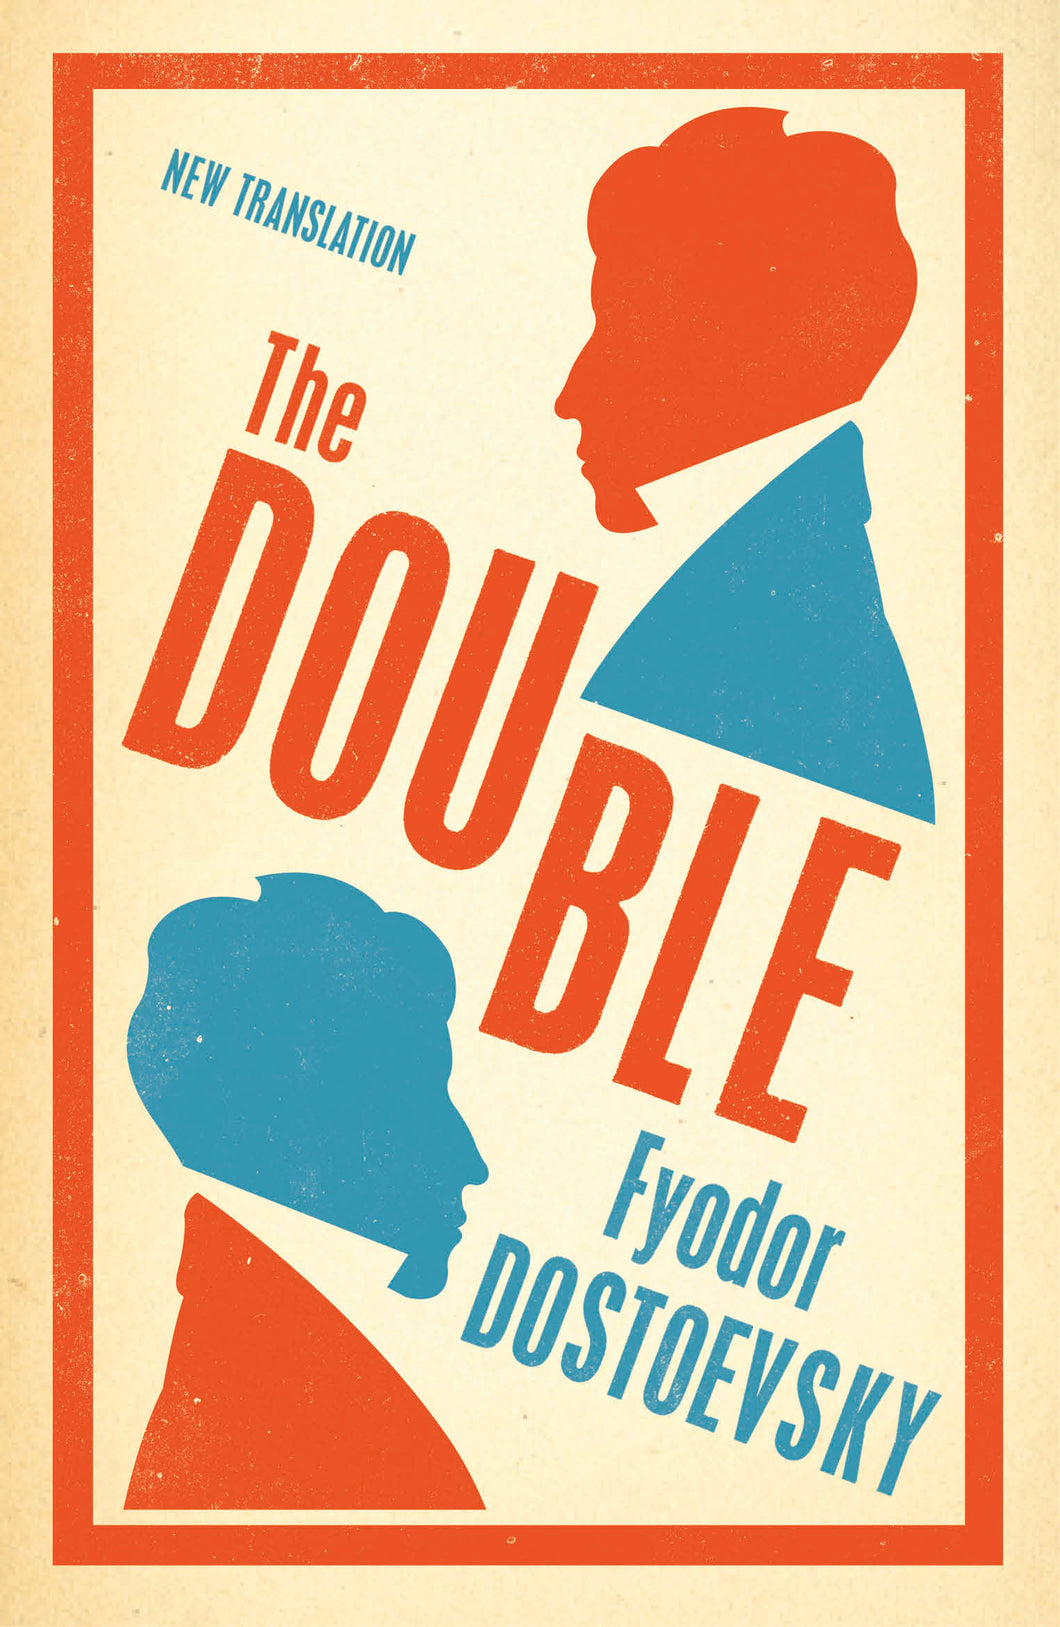 The Double - Fyodor Dostoevsky - Boekenmarkt de Markies